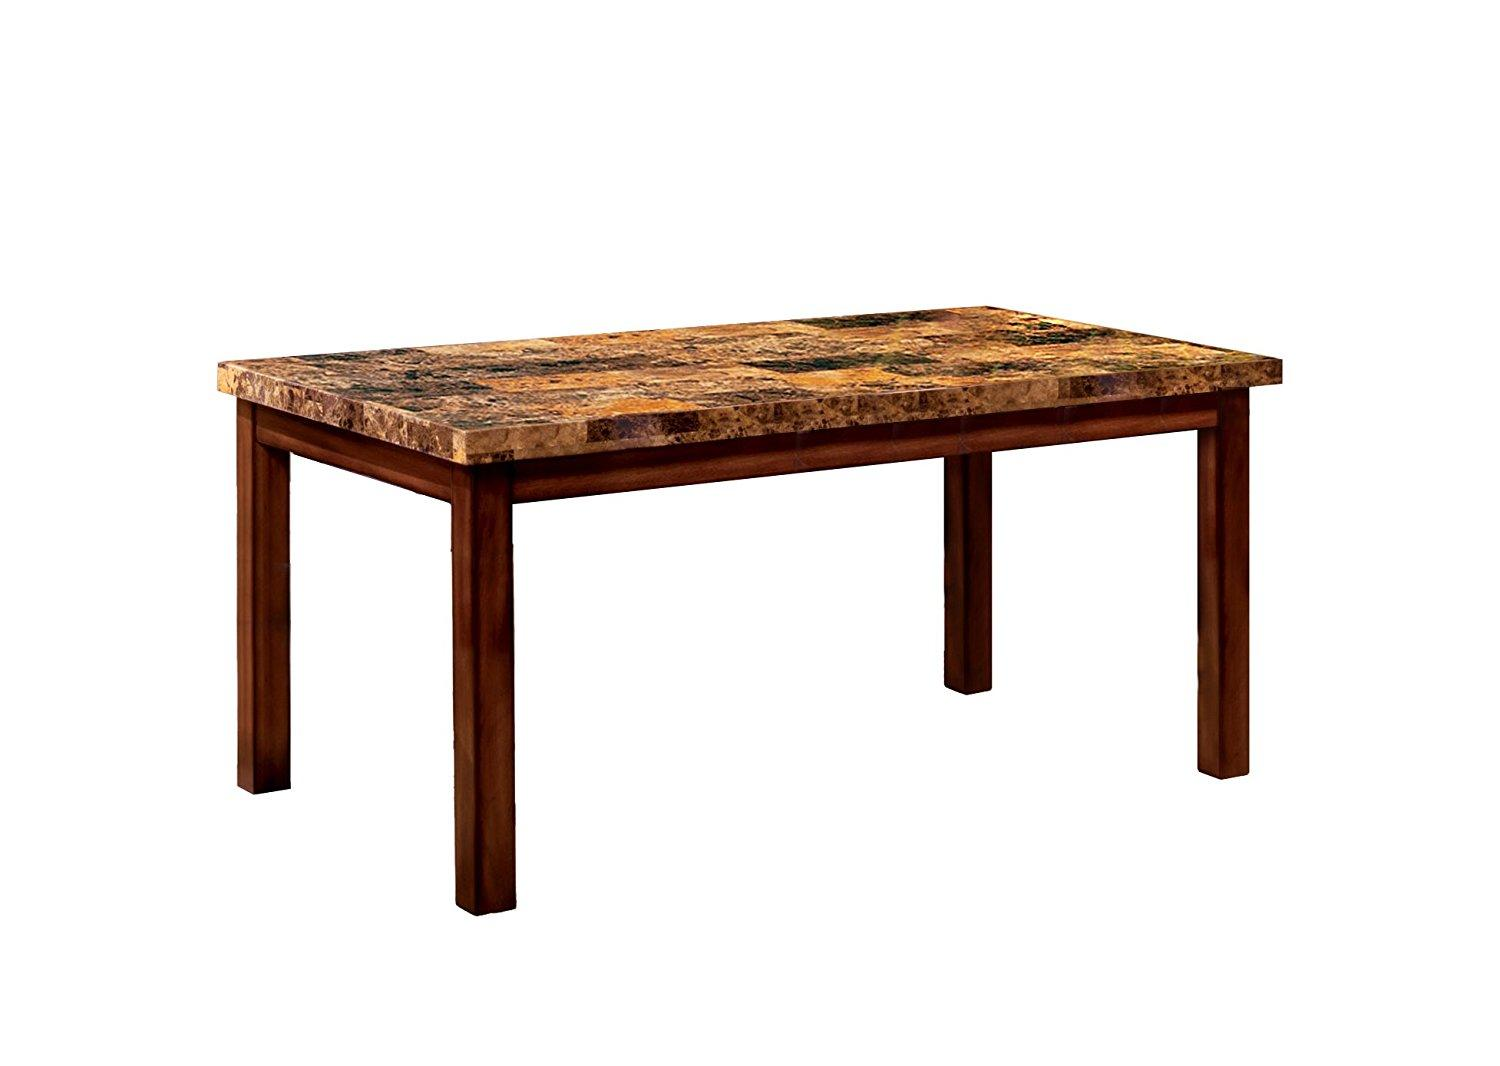 Furniture Of America Carignan 60-Inch Dining Table With Faux Marble Top, Dark Oak Finish